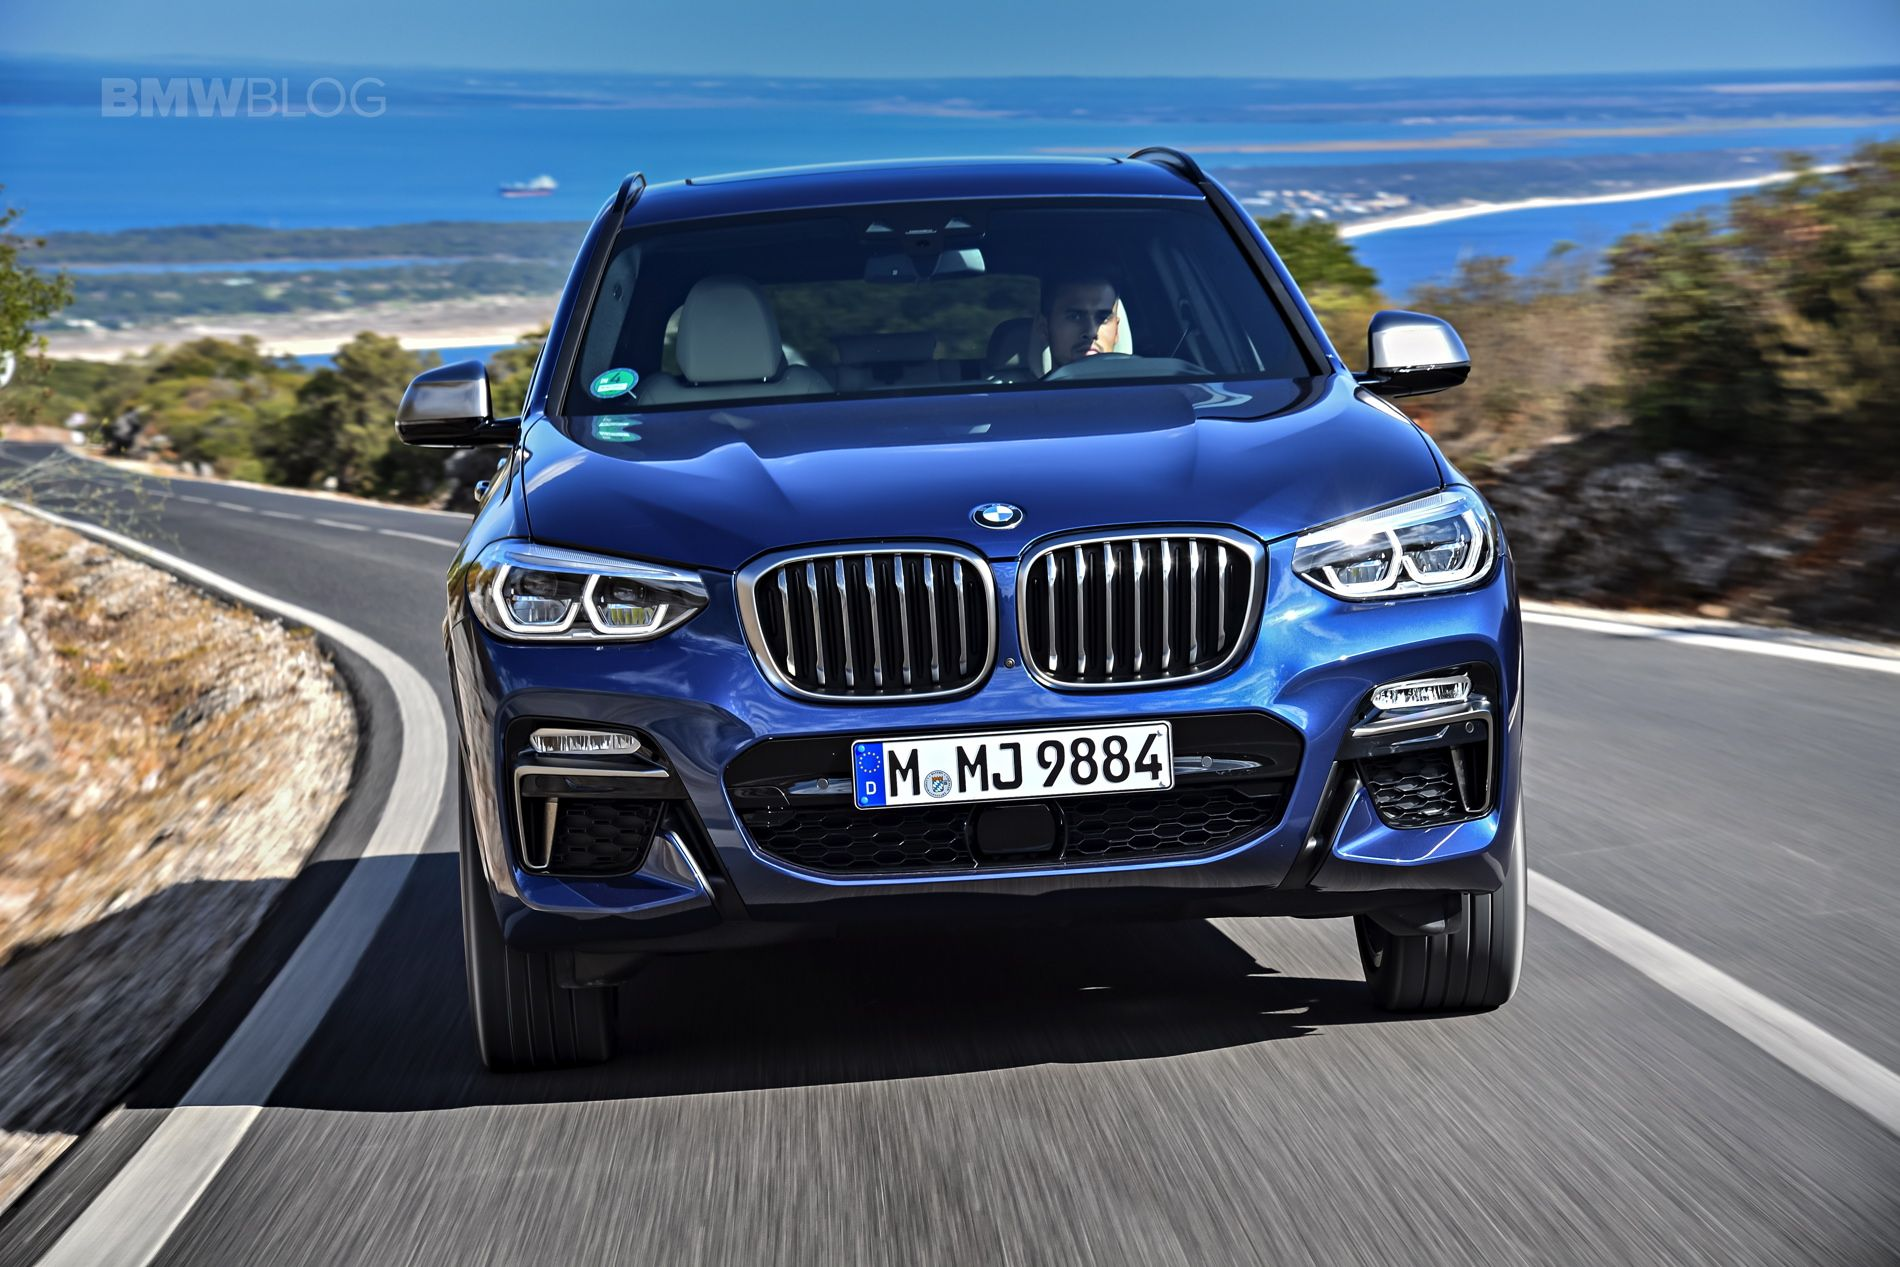 Due To New Wltp Cycle The Bmw X3 M40i Now Makes 354 Hp In Europe Bmw X3 Bmw New Bmw X3